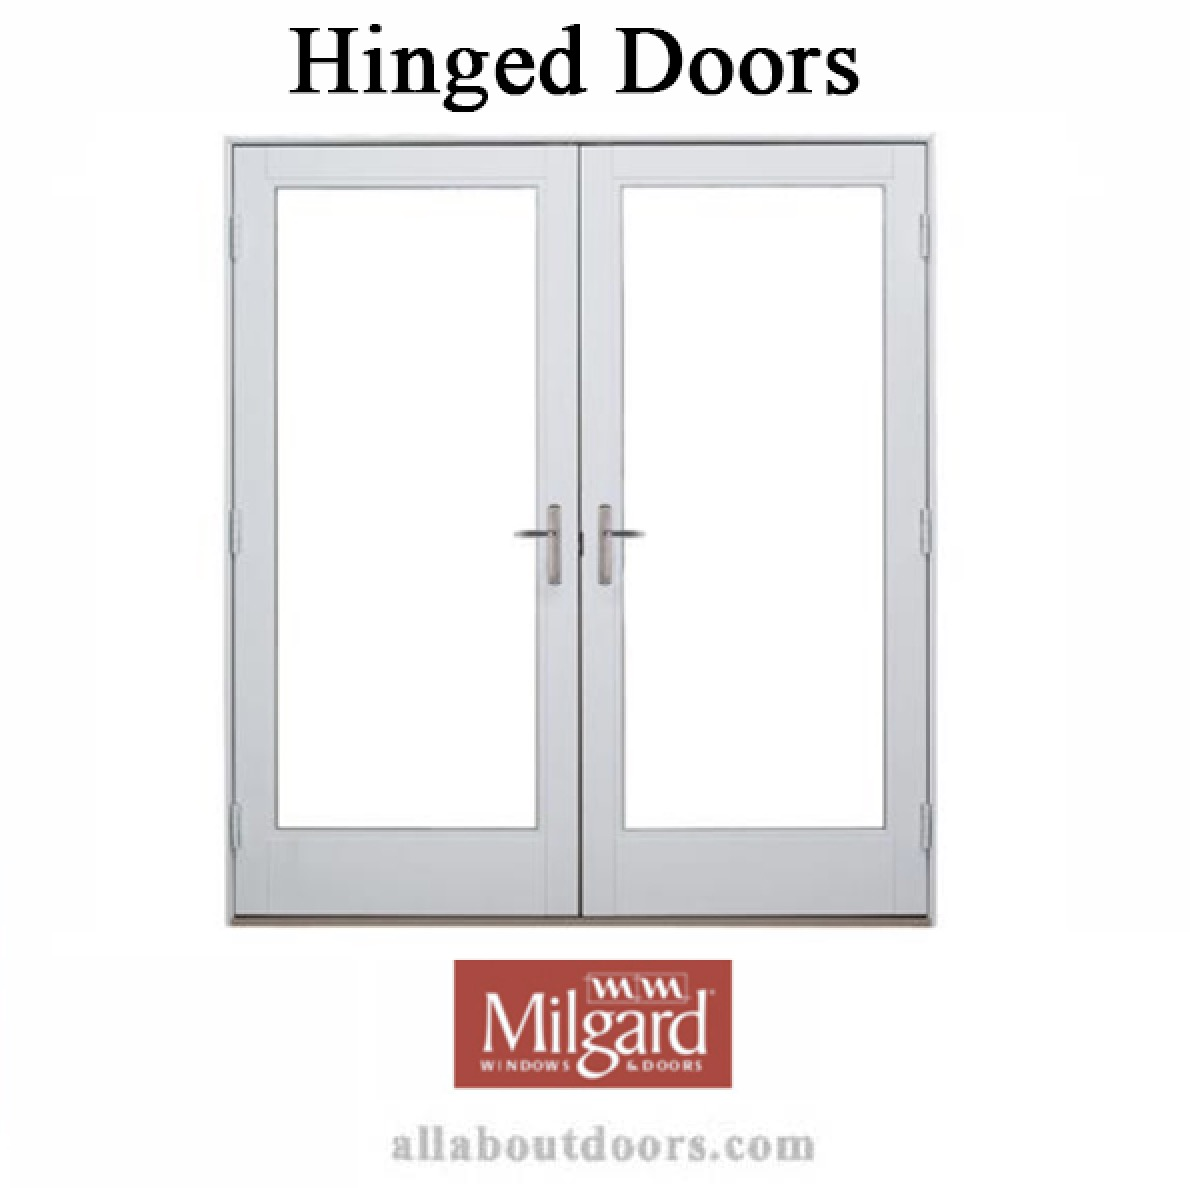 Milgard Hinged Door Hardware